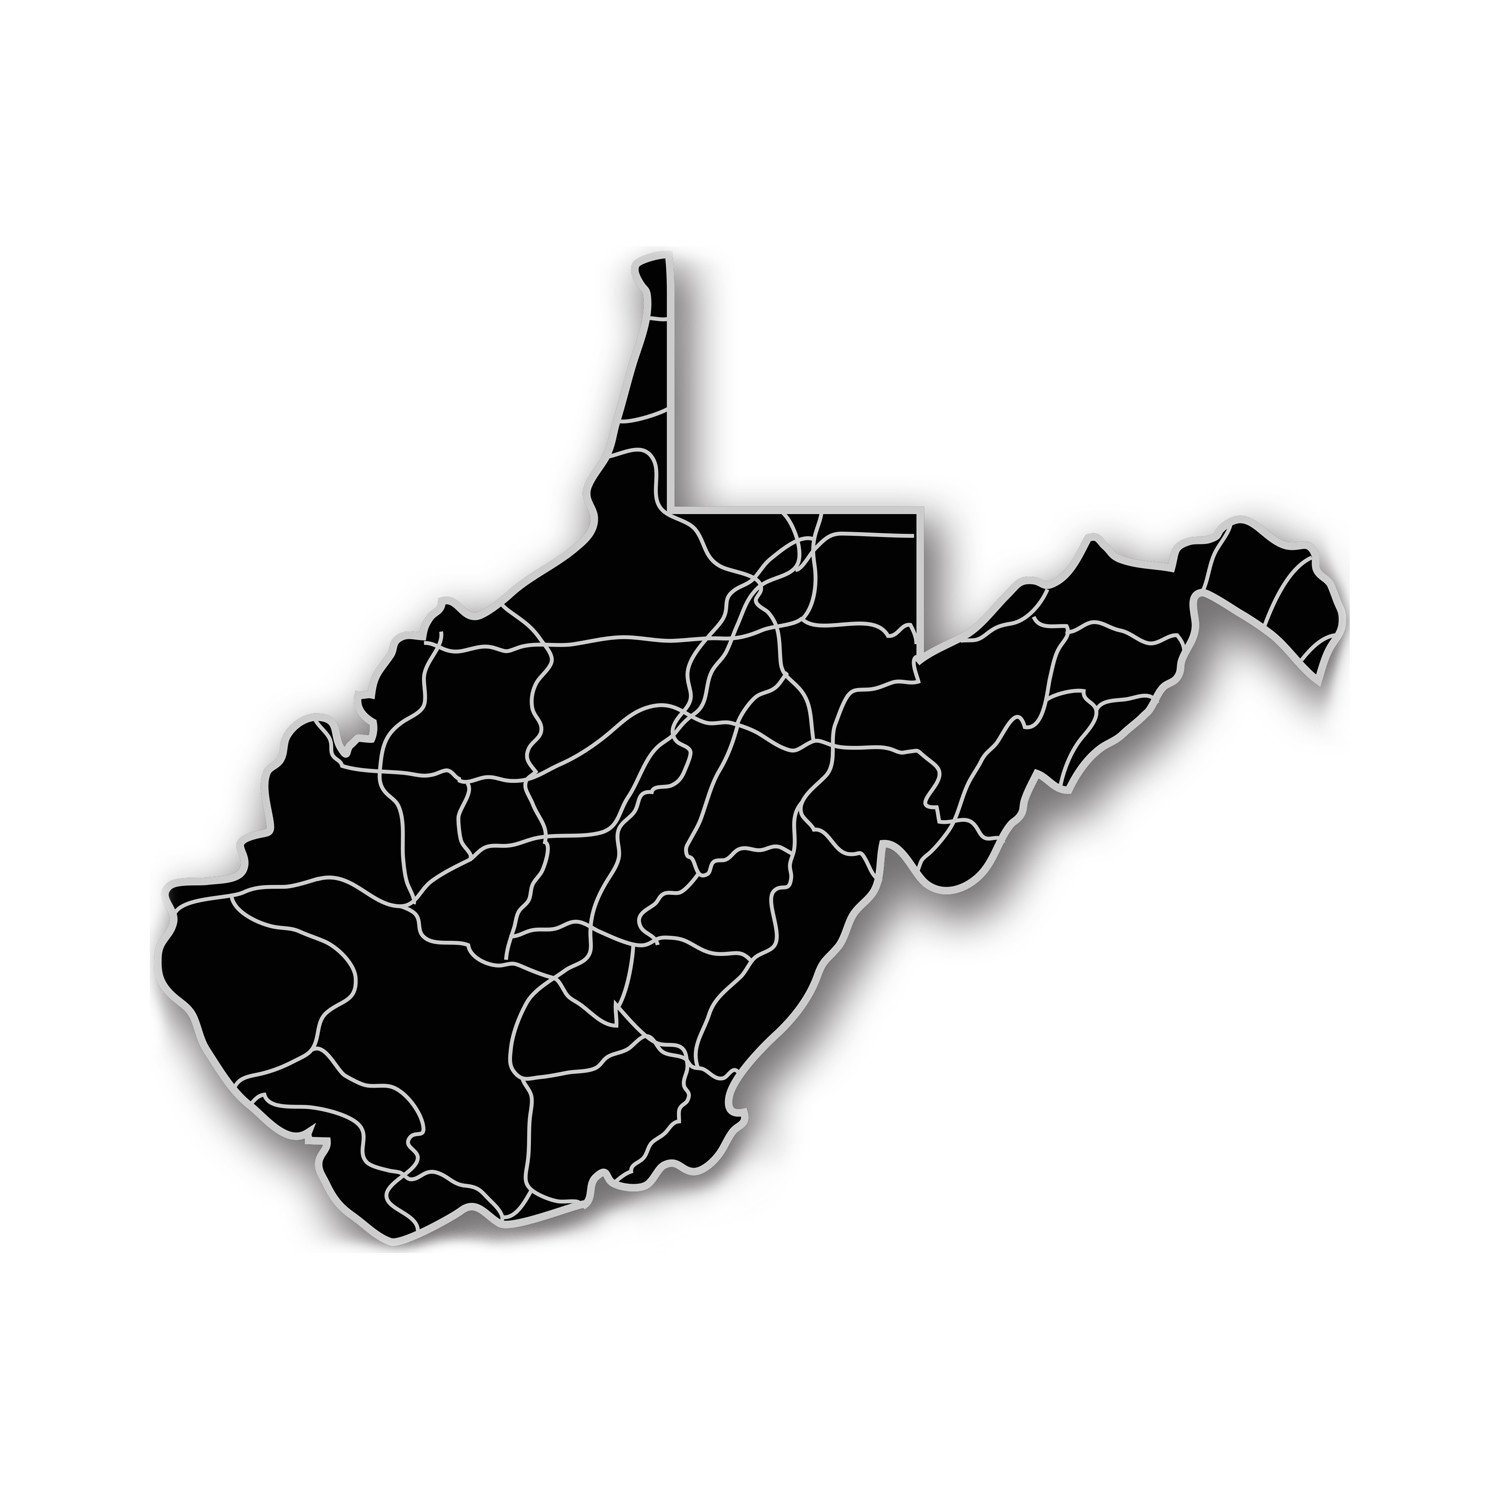 West Virginia Acrylic Cutout State Map Modern Crowd Touch Of